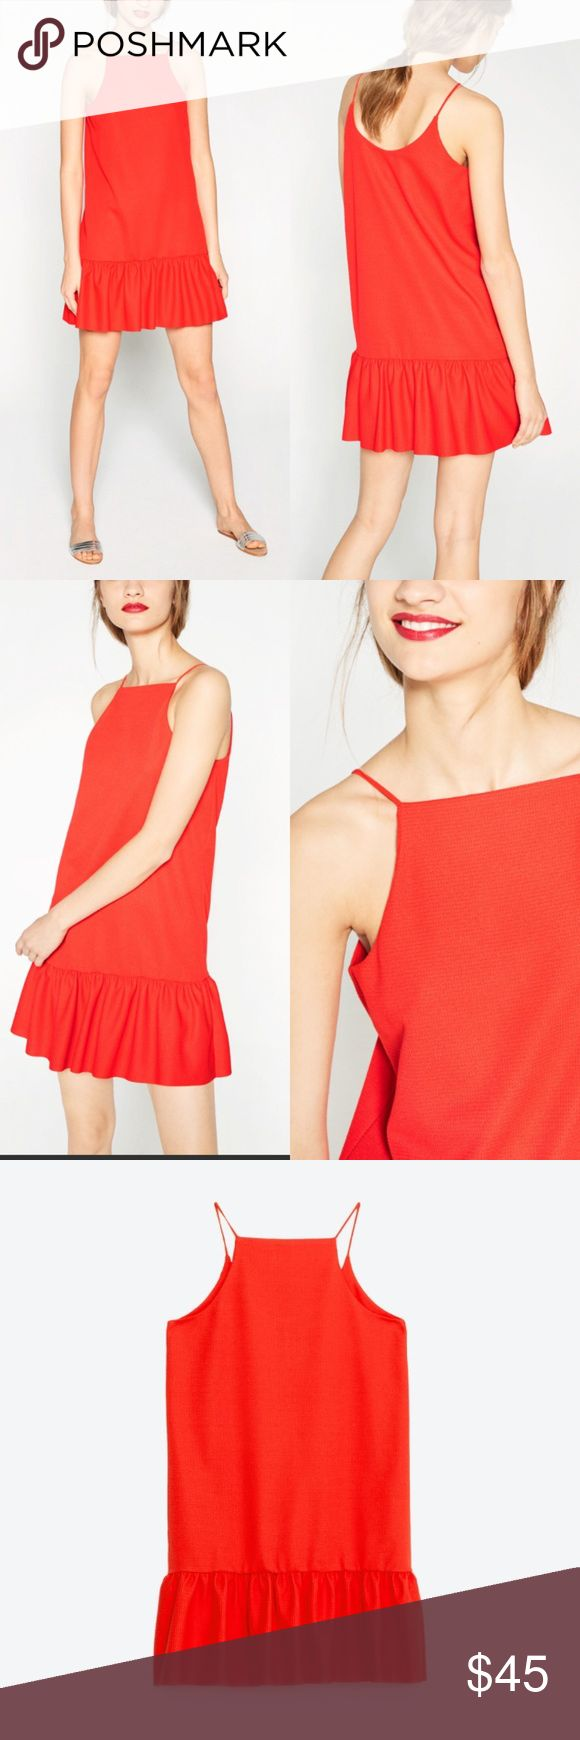 "Zara Dress Ruffle hem and effortless. Has stretch for easy pull in styling and fully lined. Great solo or with a jacket on chillier nights. 17.25"" underarm to underarm and 23.5"" L Zara Dresses"